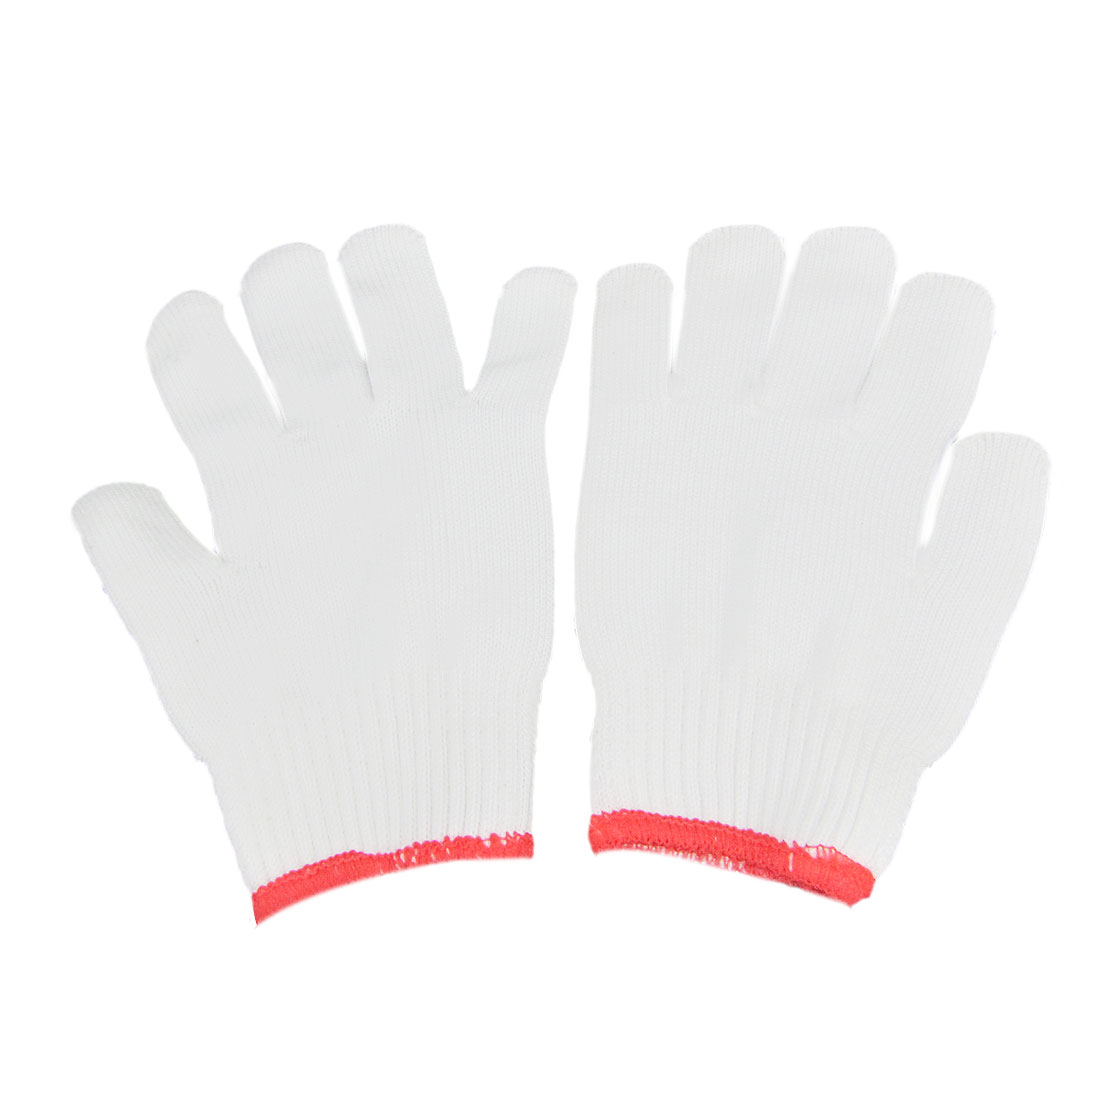 2 Pairs Red Cuff White Knitted Winter Protecting Safe Work Gloves